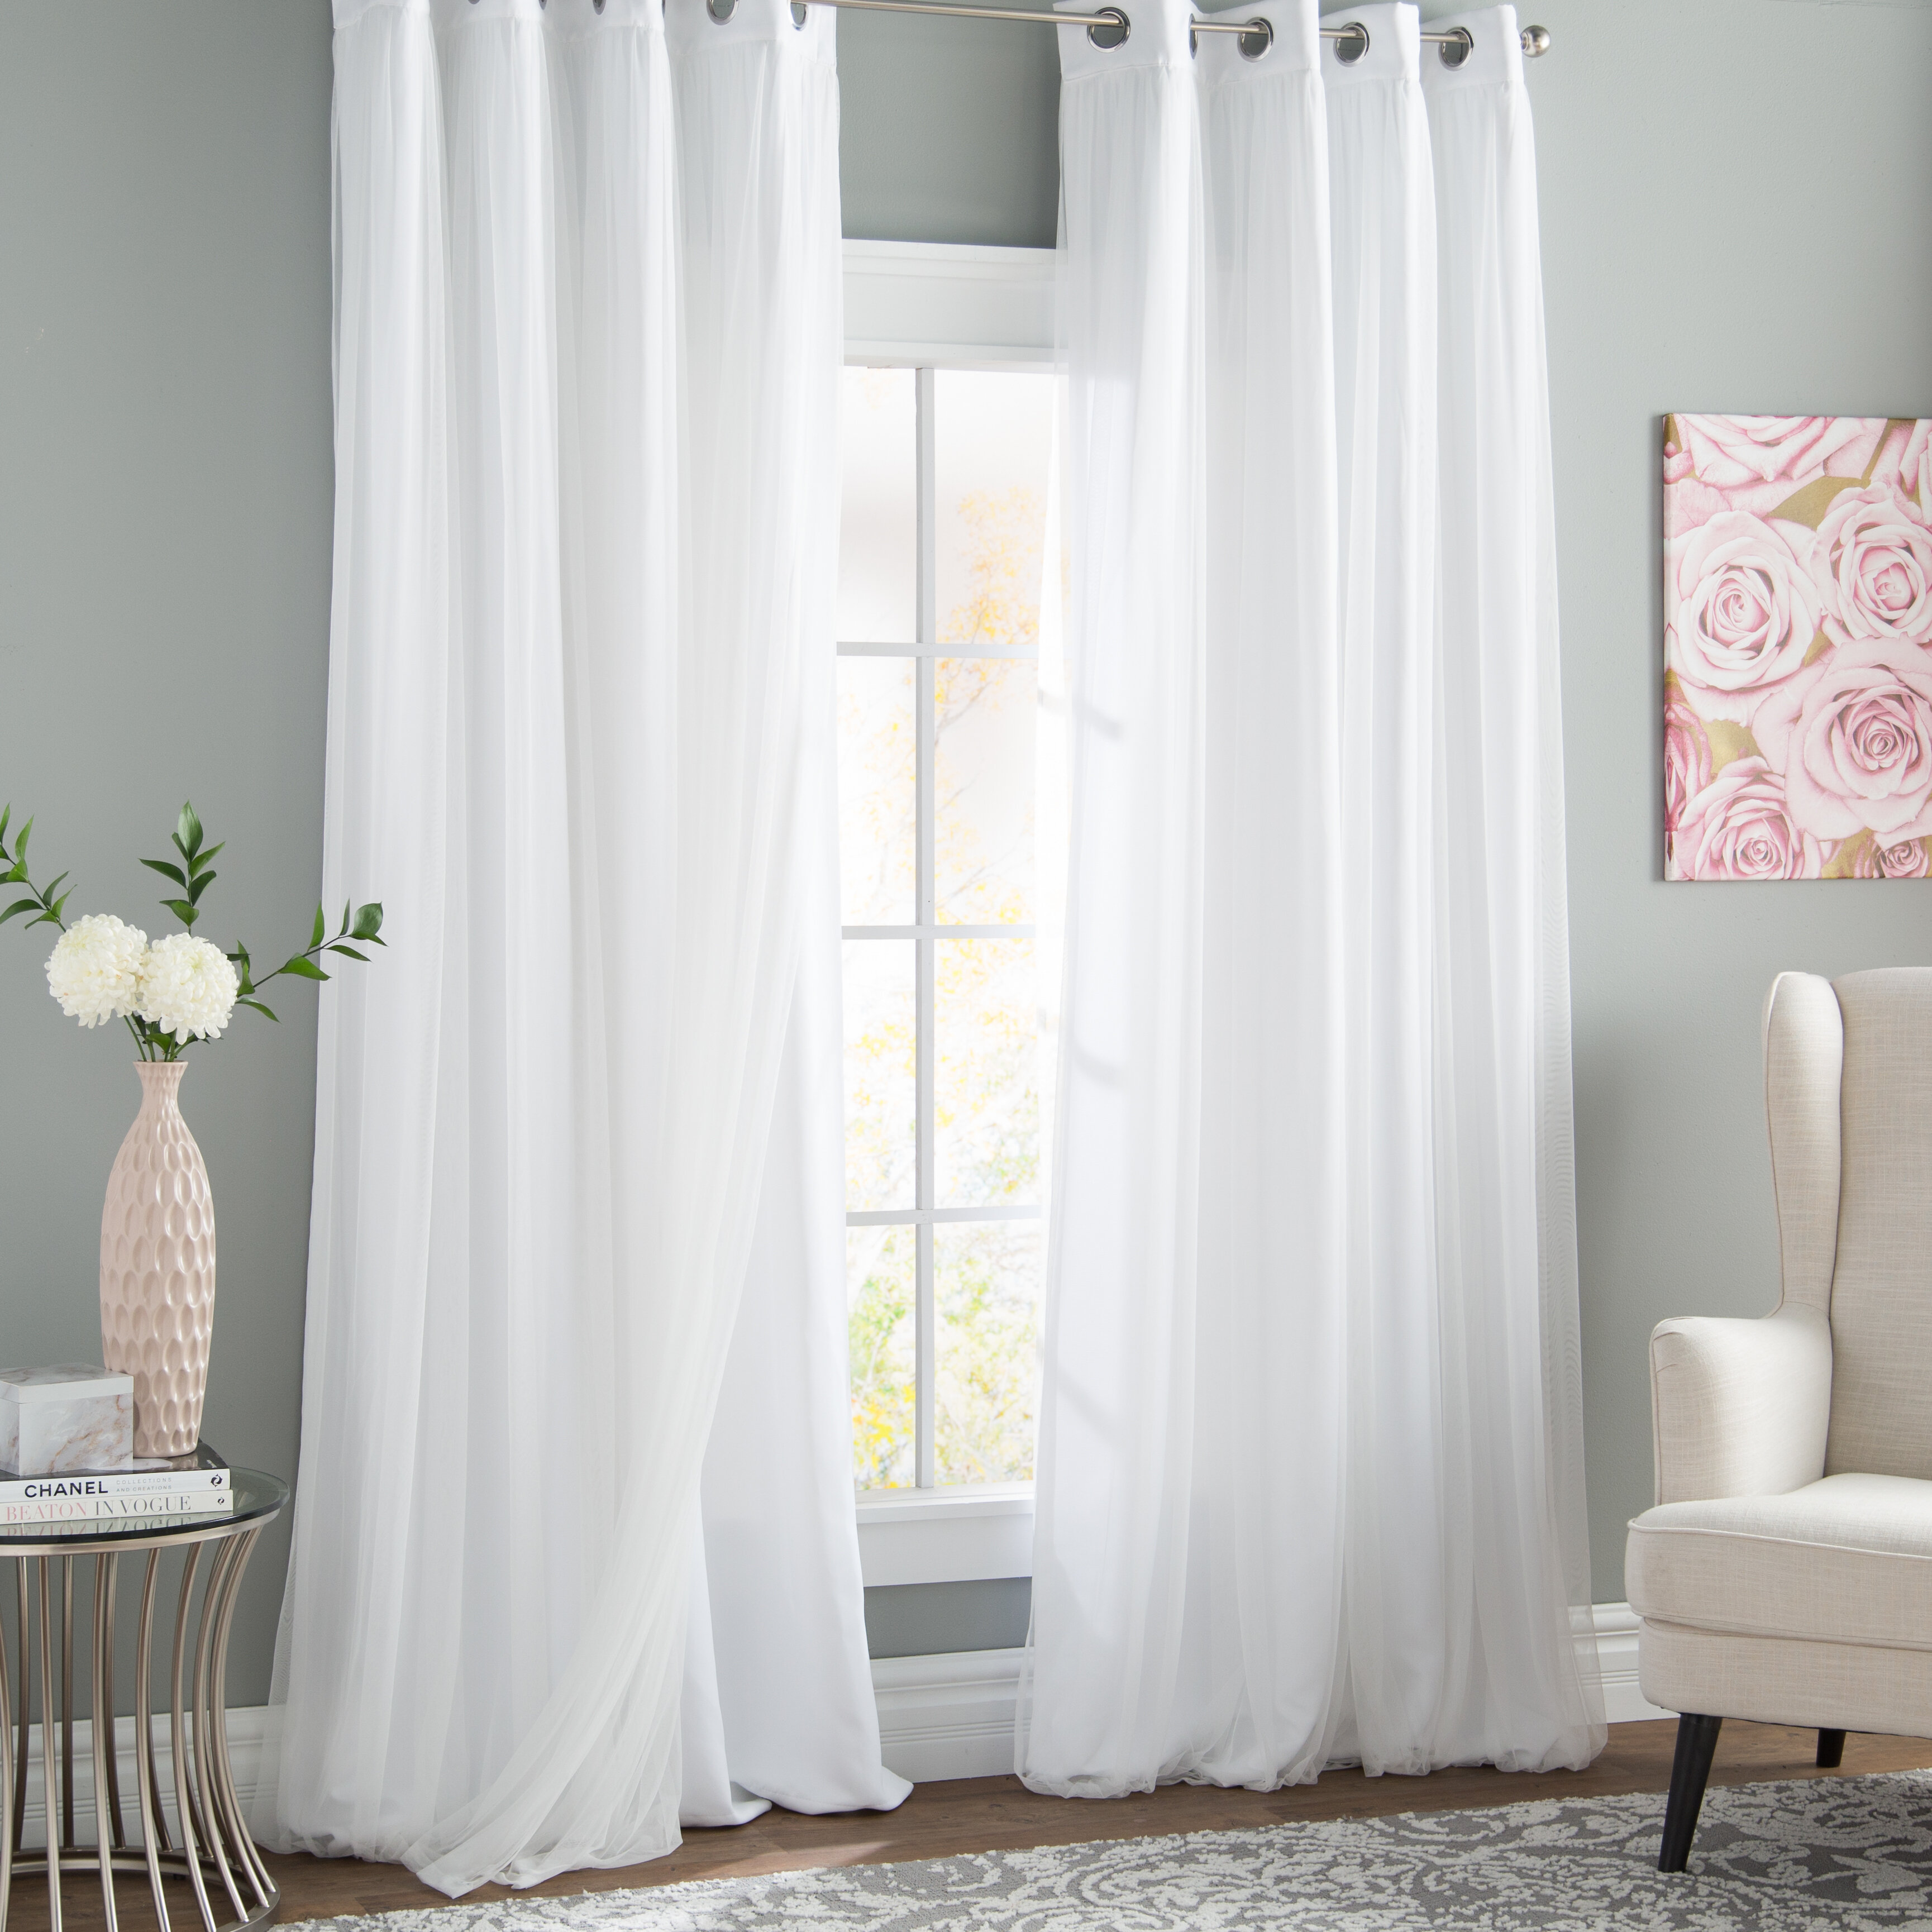 Black White Curtains Drapes Free Shipping Over 35 Wayfair